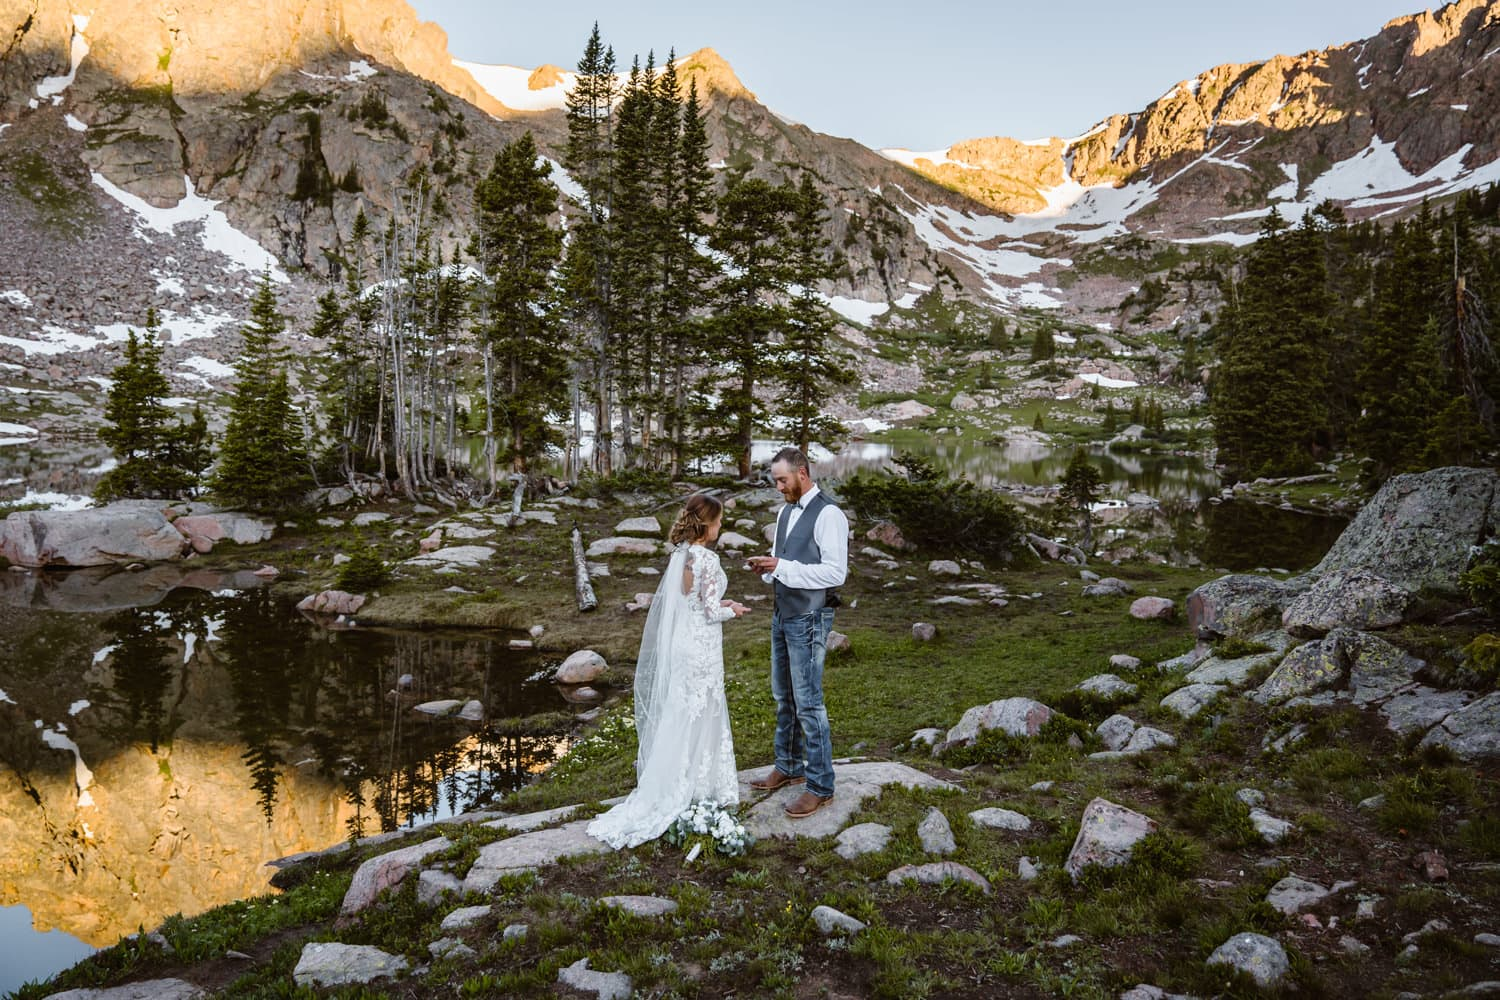 Vow Ceremony Backpacking Wedding Elopement